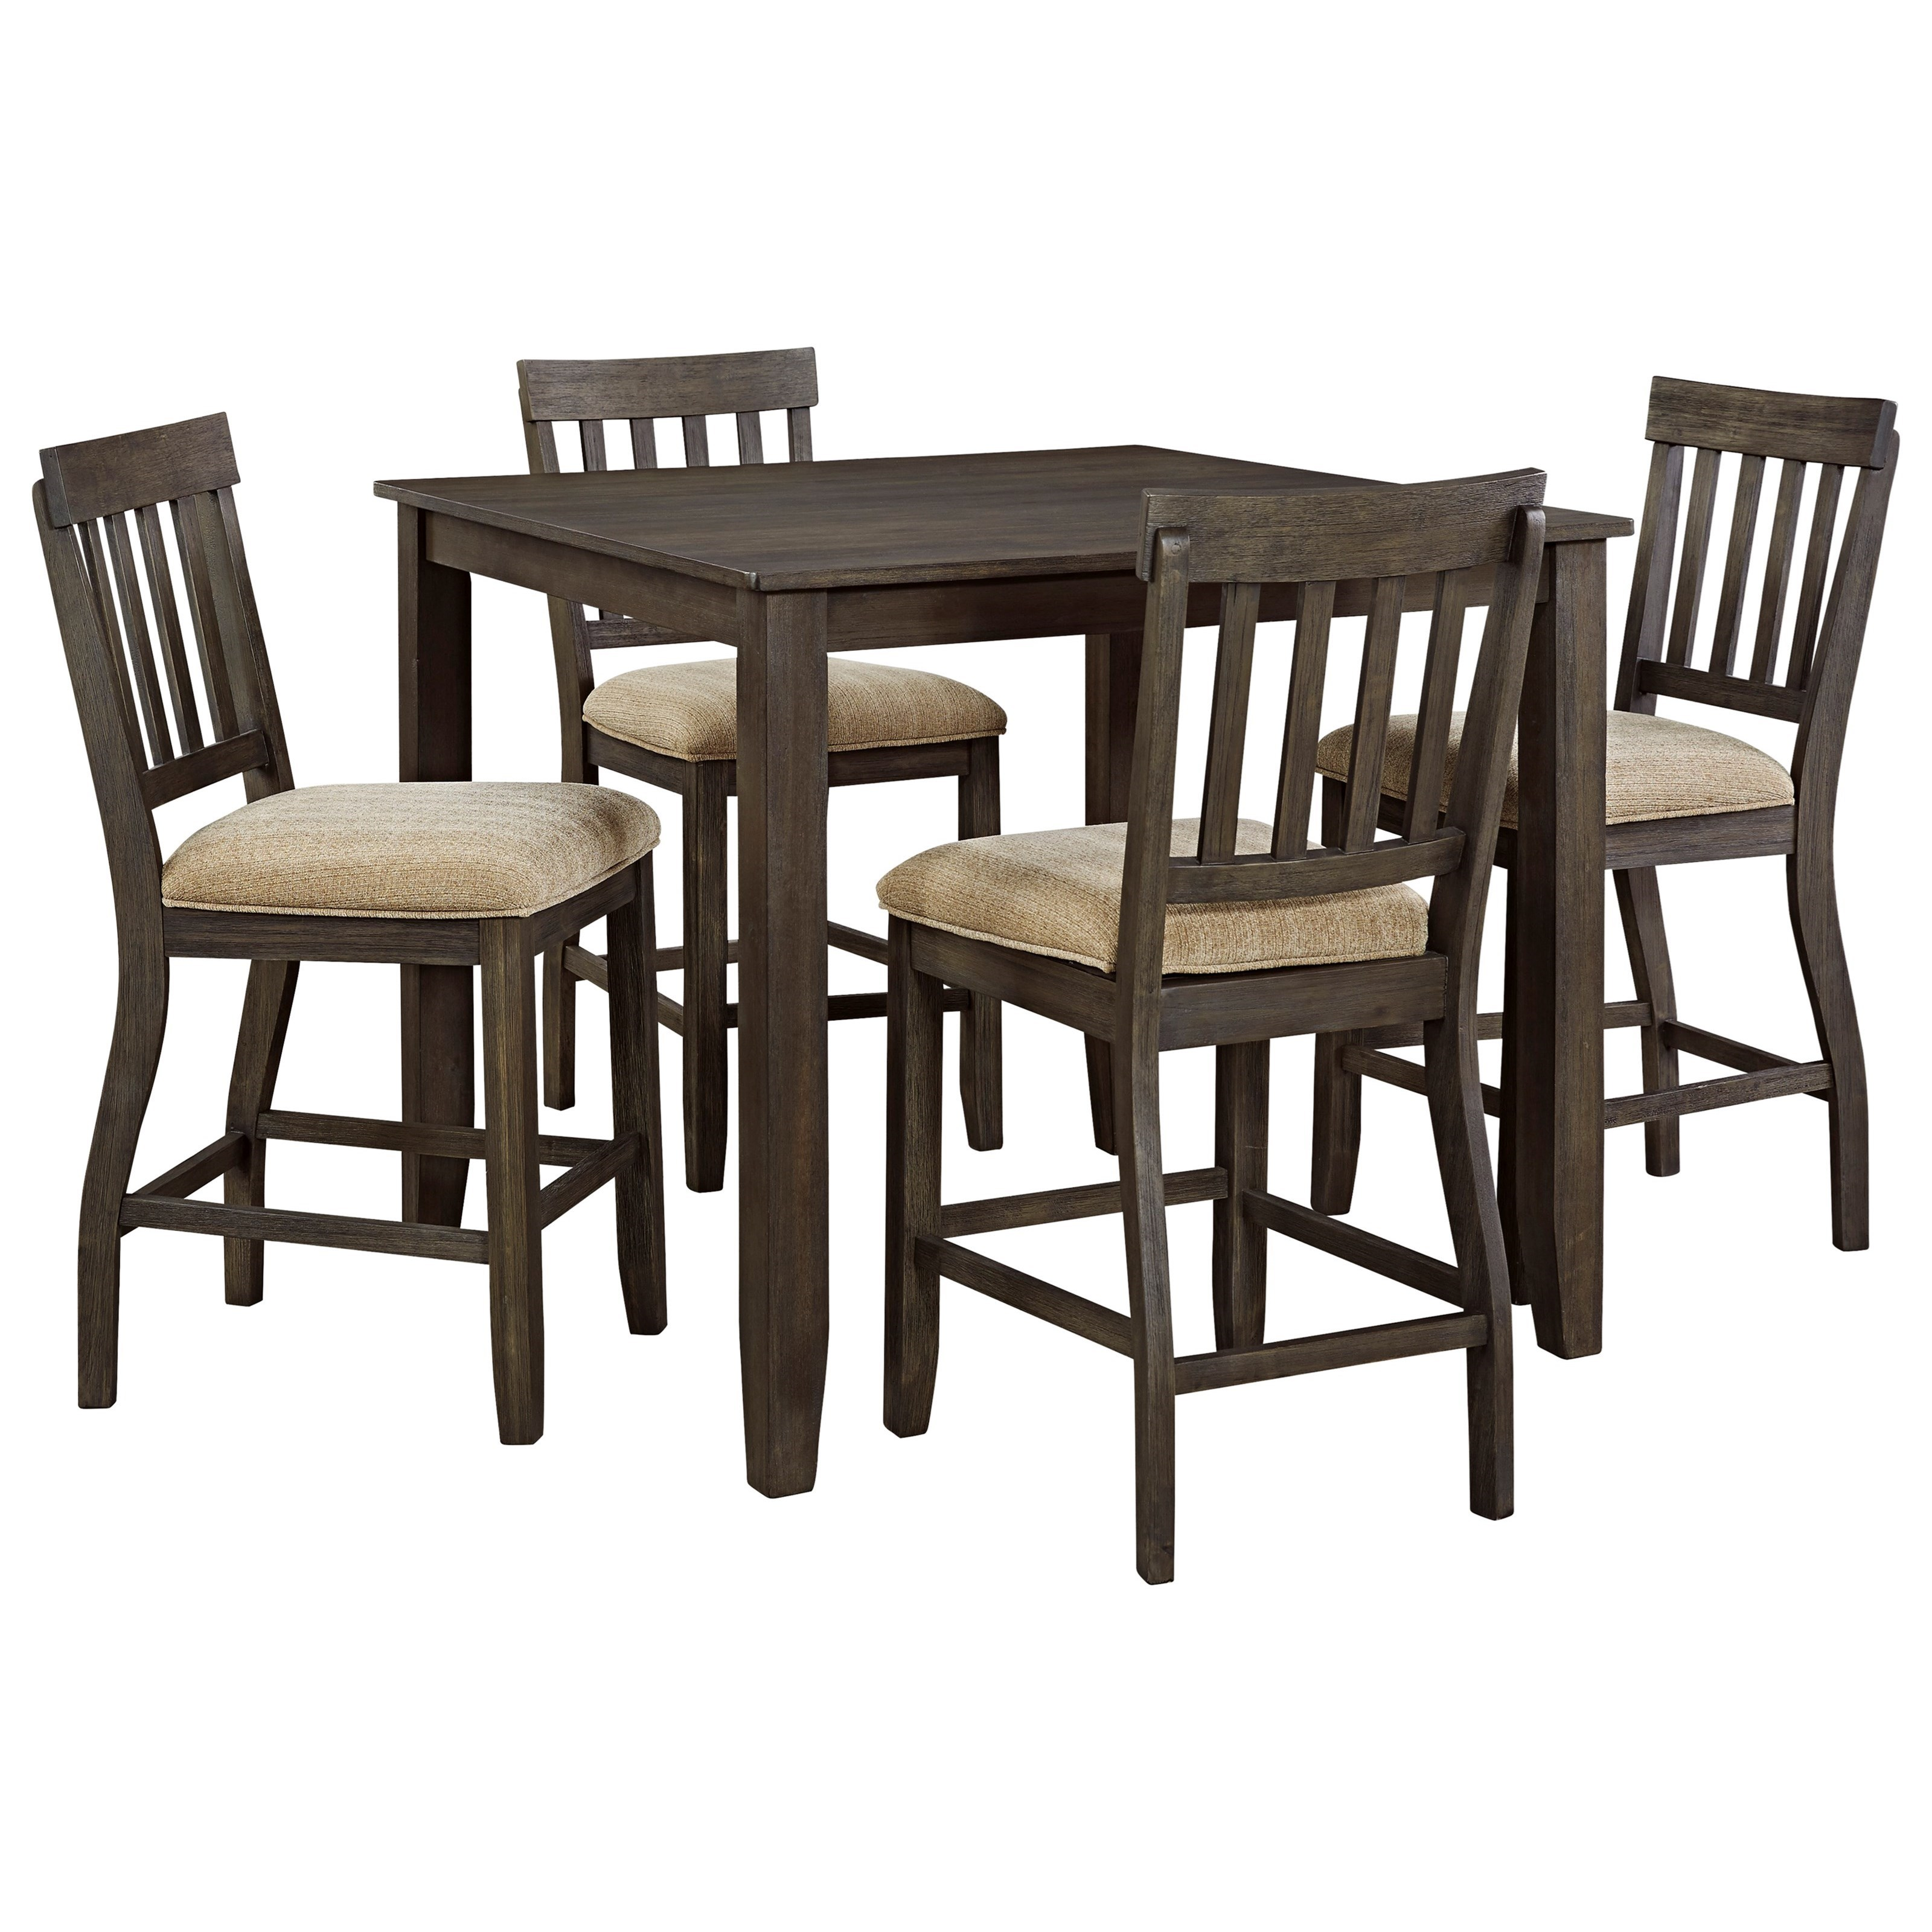 Signature design by ashley dresbar 5 piece square dining for Ashley furniture dinette sets